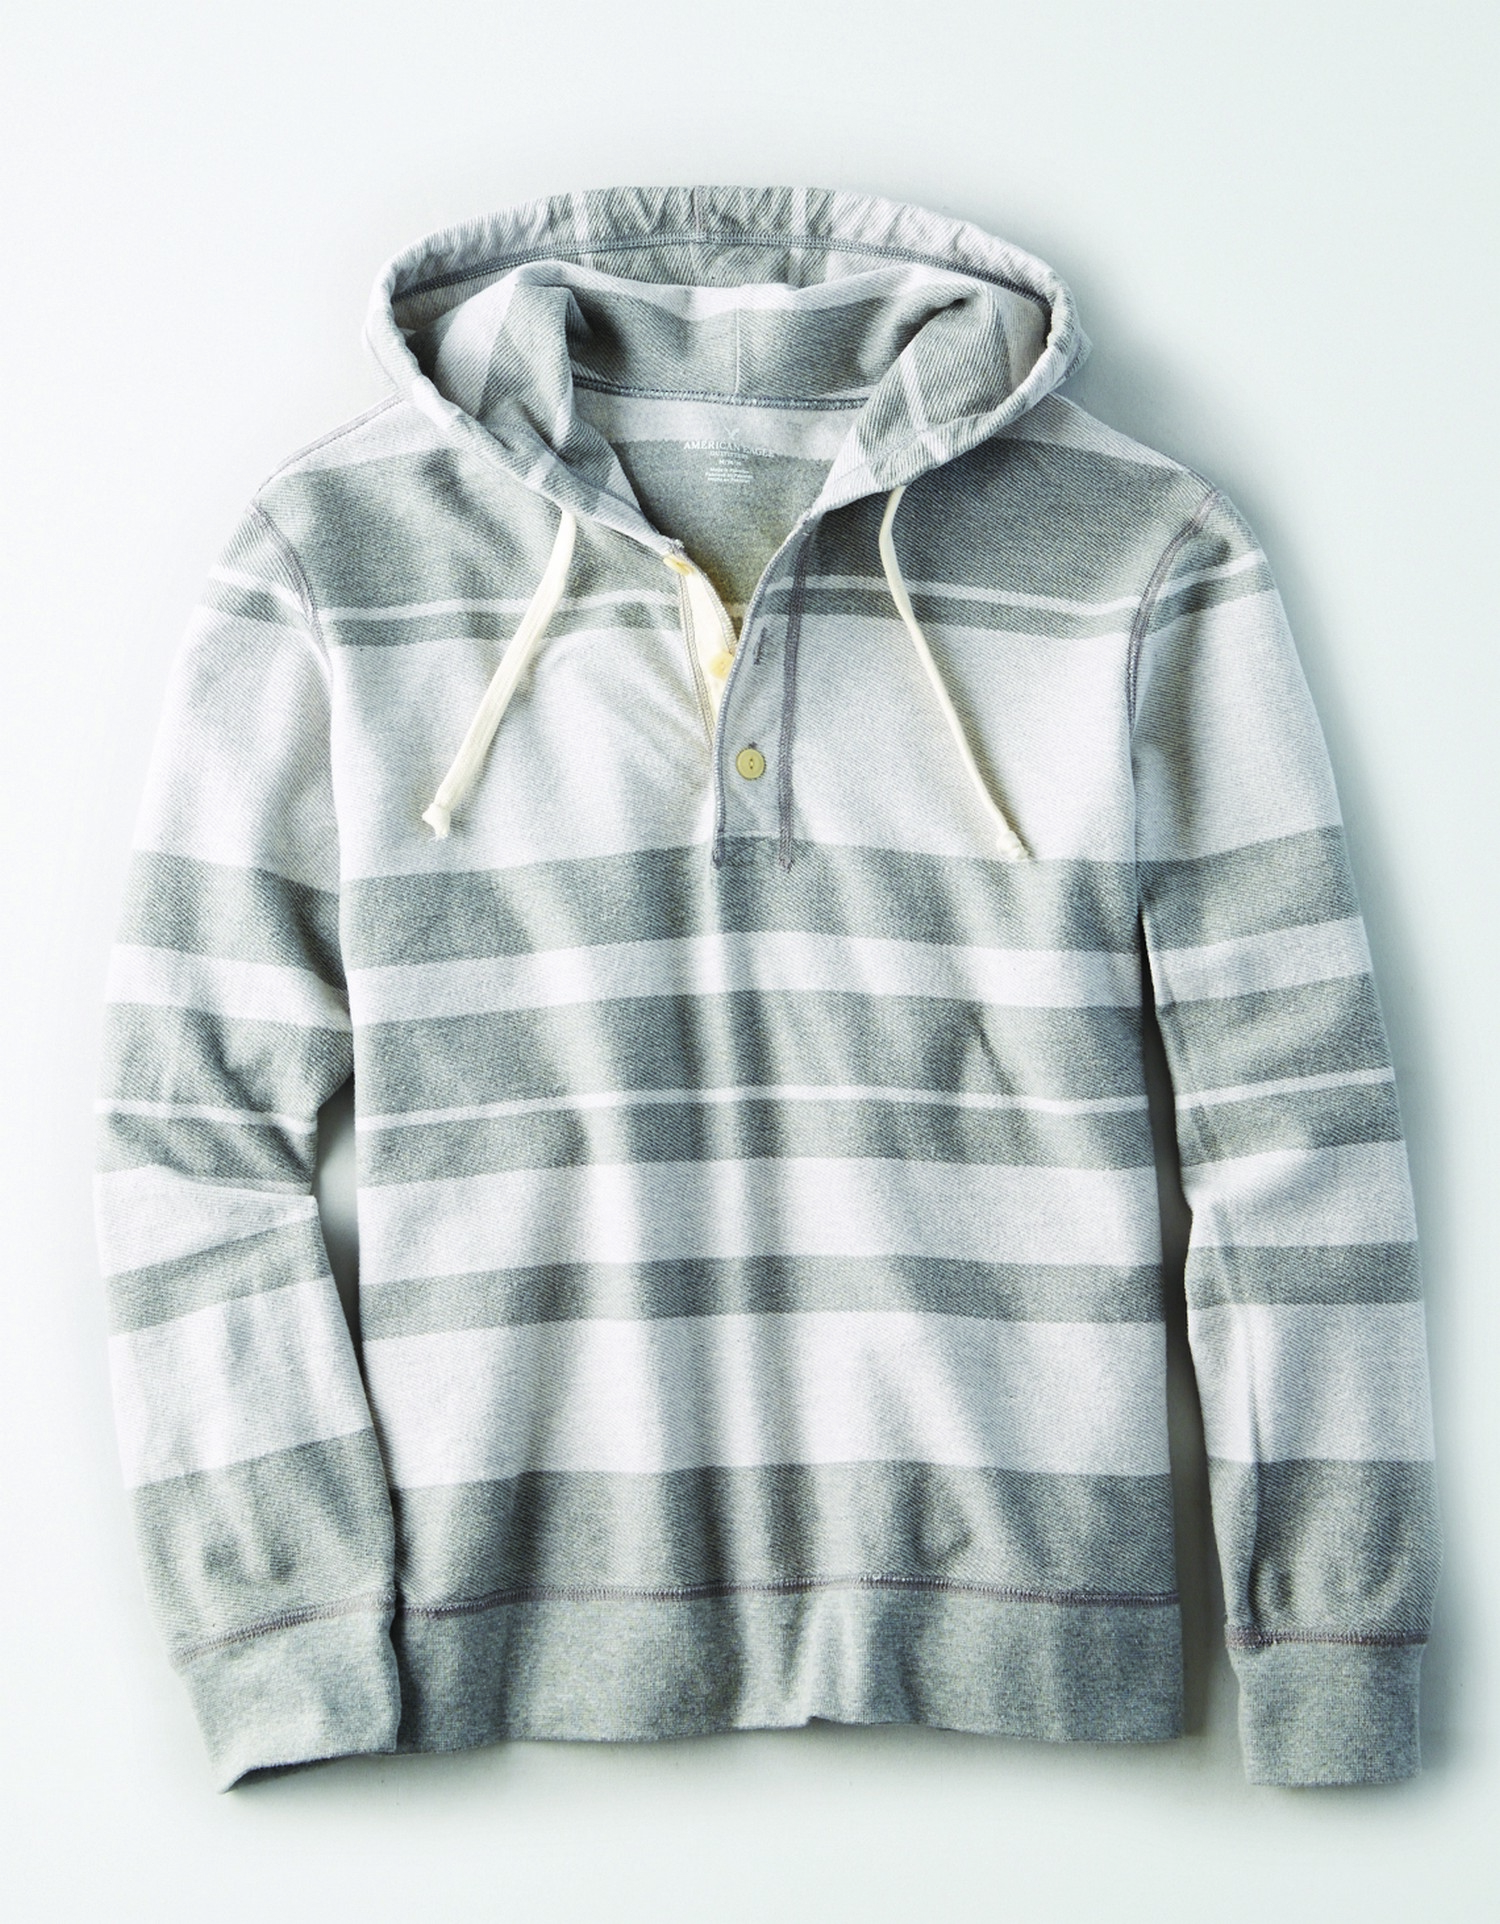 AE- M- FEB- APPAREL- BAHA HANLEY HOODIE- LIGHT AND DARKER SHADES OF GRAY STRIPPED AL *Tracked